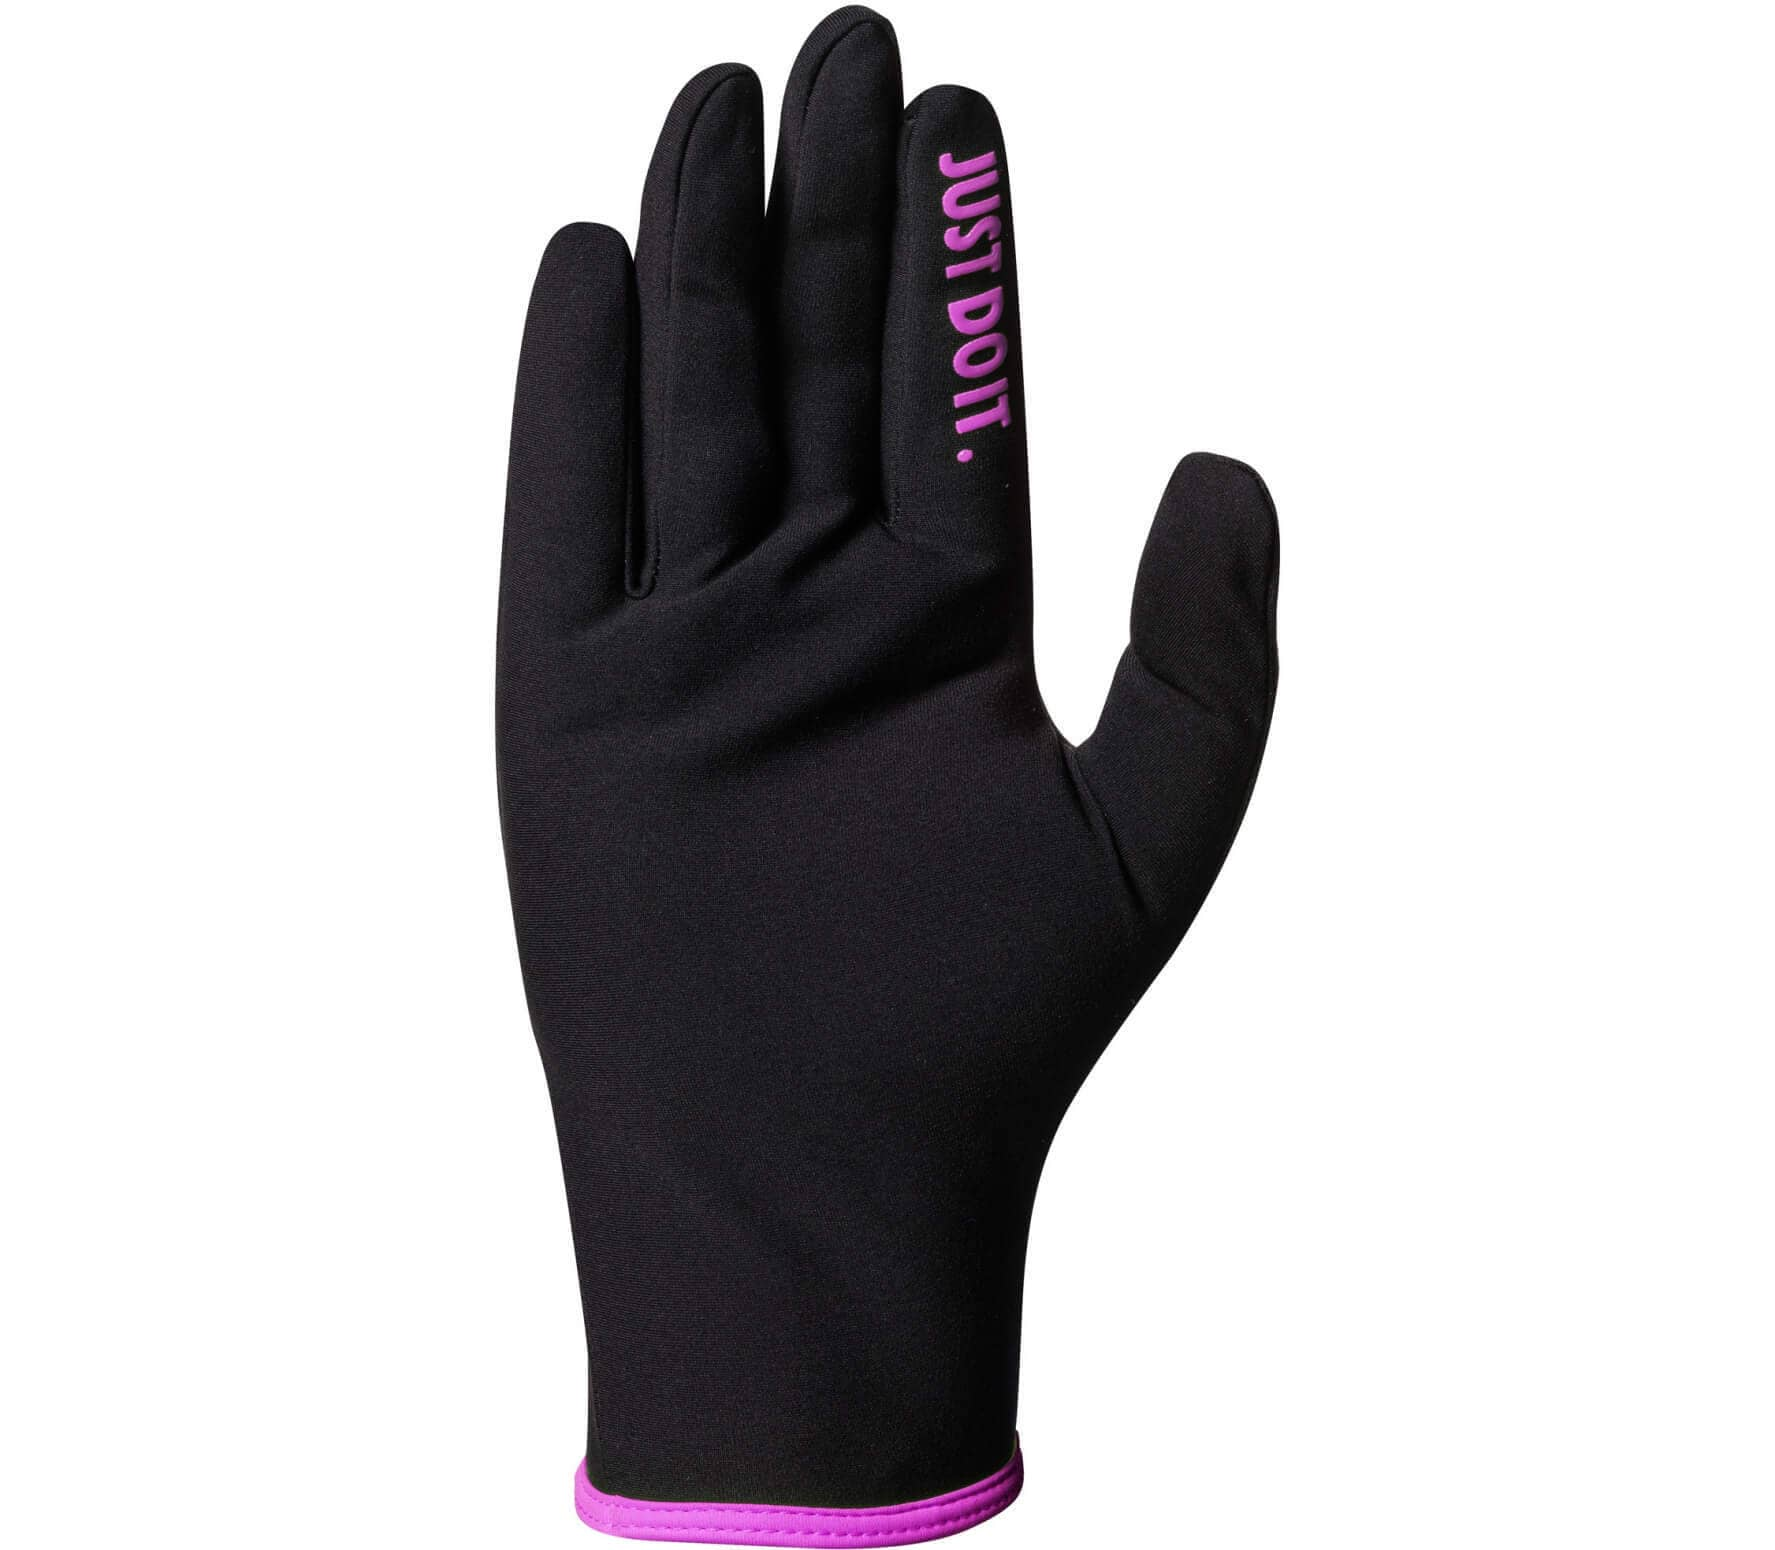 super popular 0c561 82288 Nike - Lightweight Rival 2.0 women s running gloves (black pink)